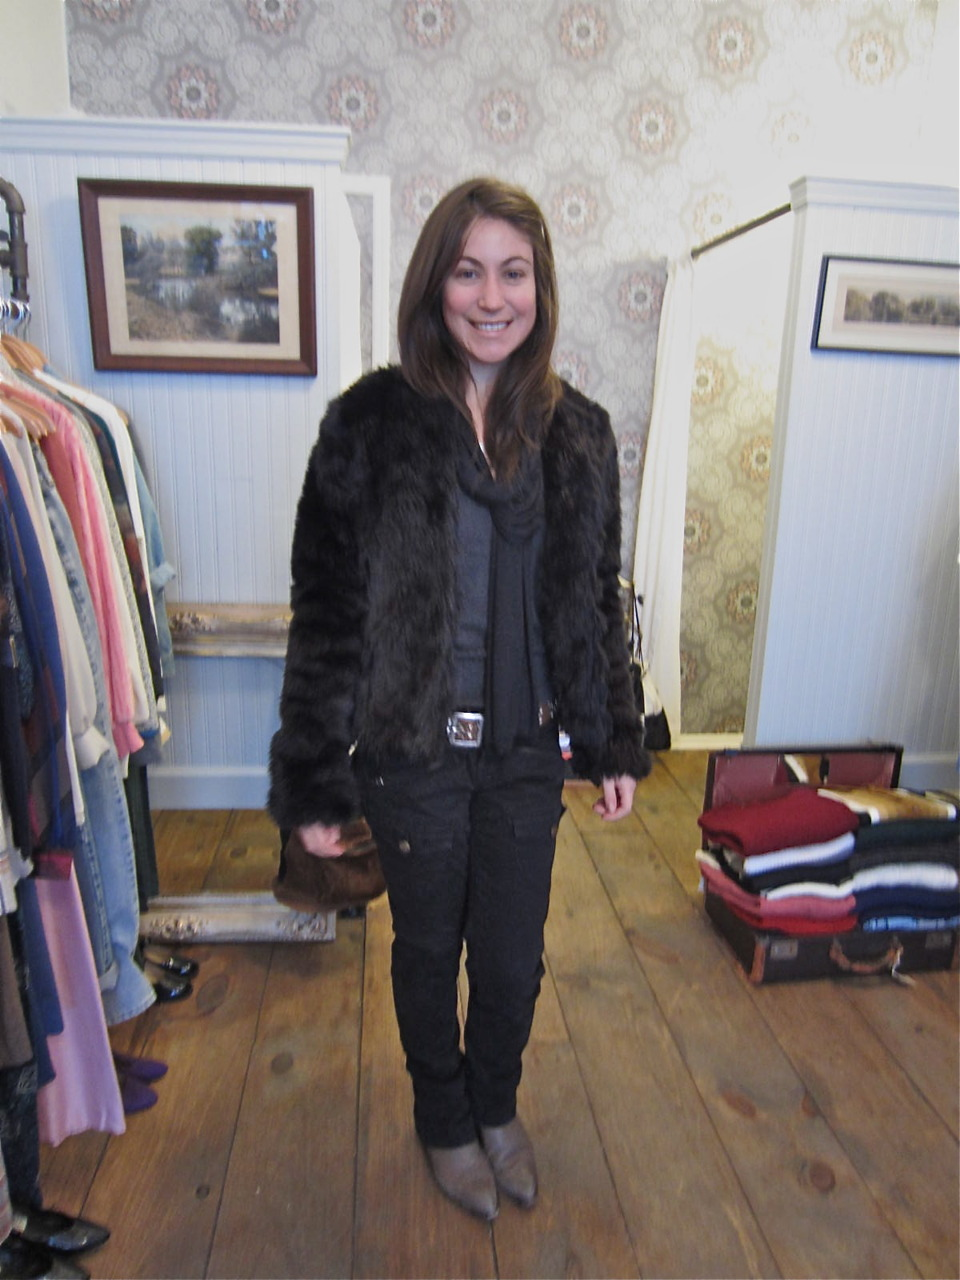 Mom's faux fur already has a new & fabulous owner We hope you enjoy your new coat Wallis!